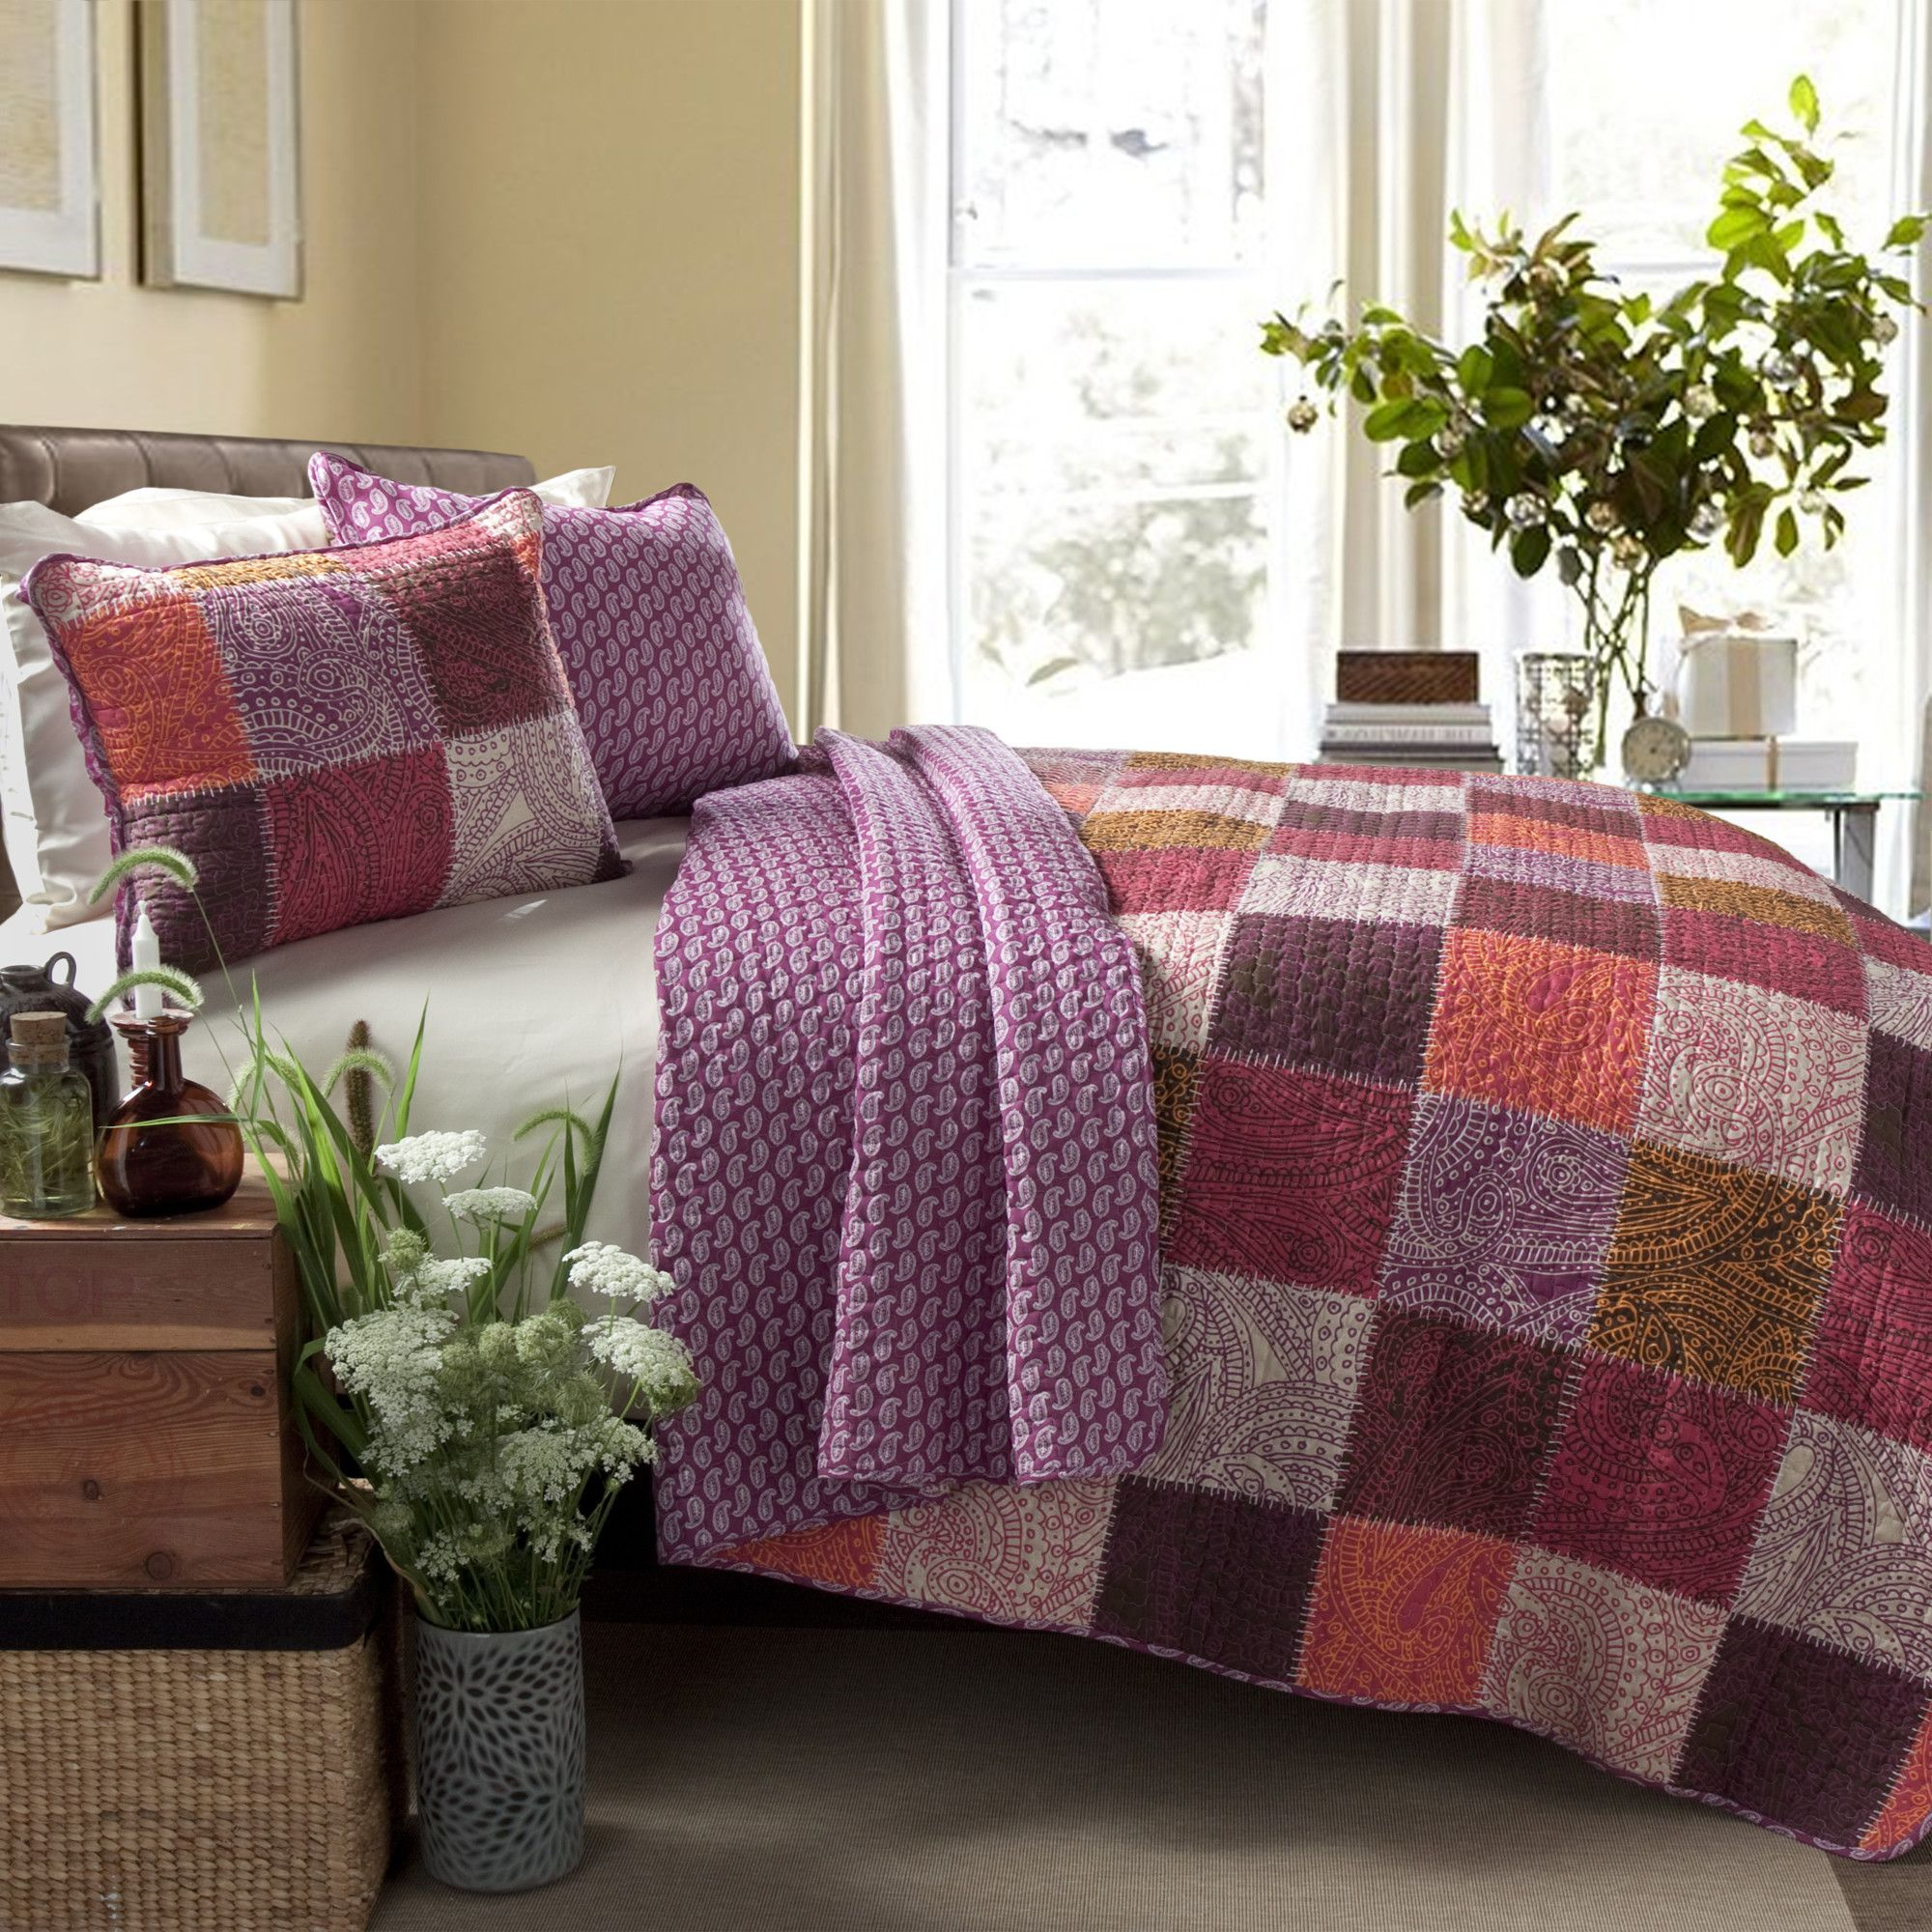 Special Edition By Lush Decor Paisley 3 Piece Patchwork Coverlet Set